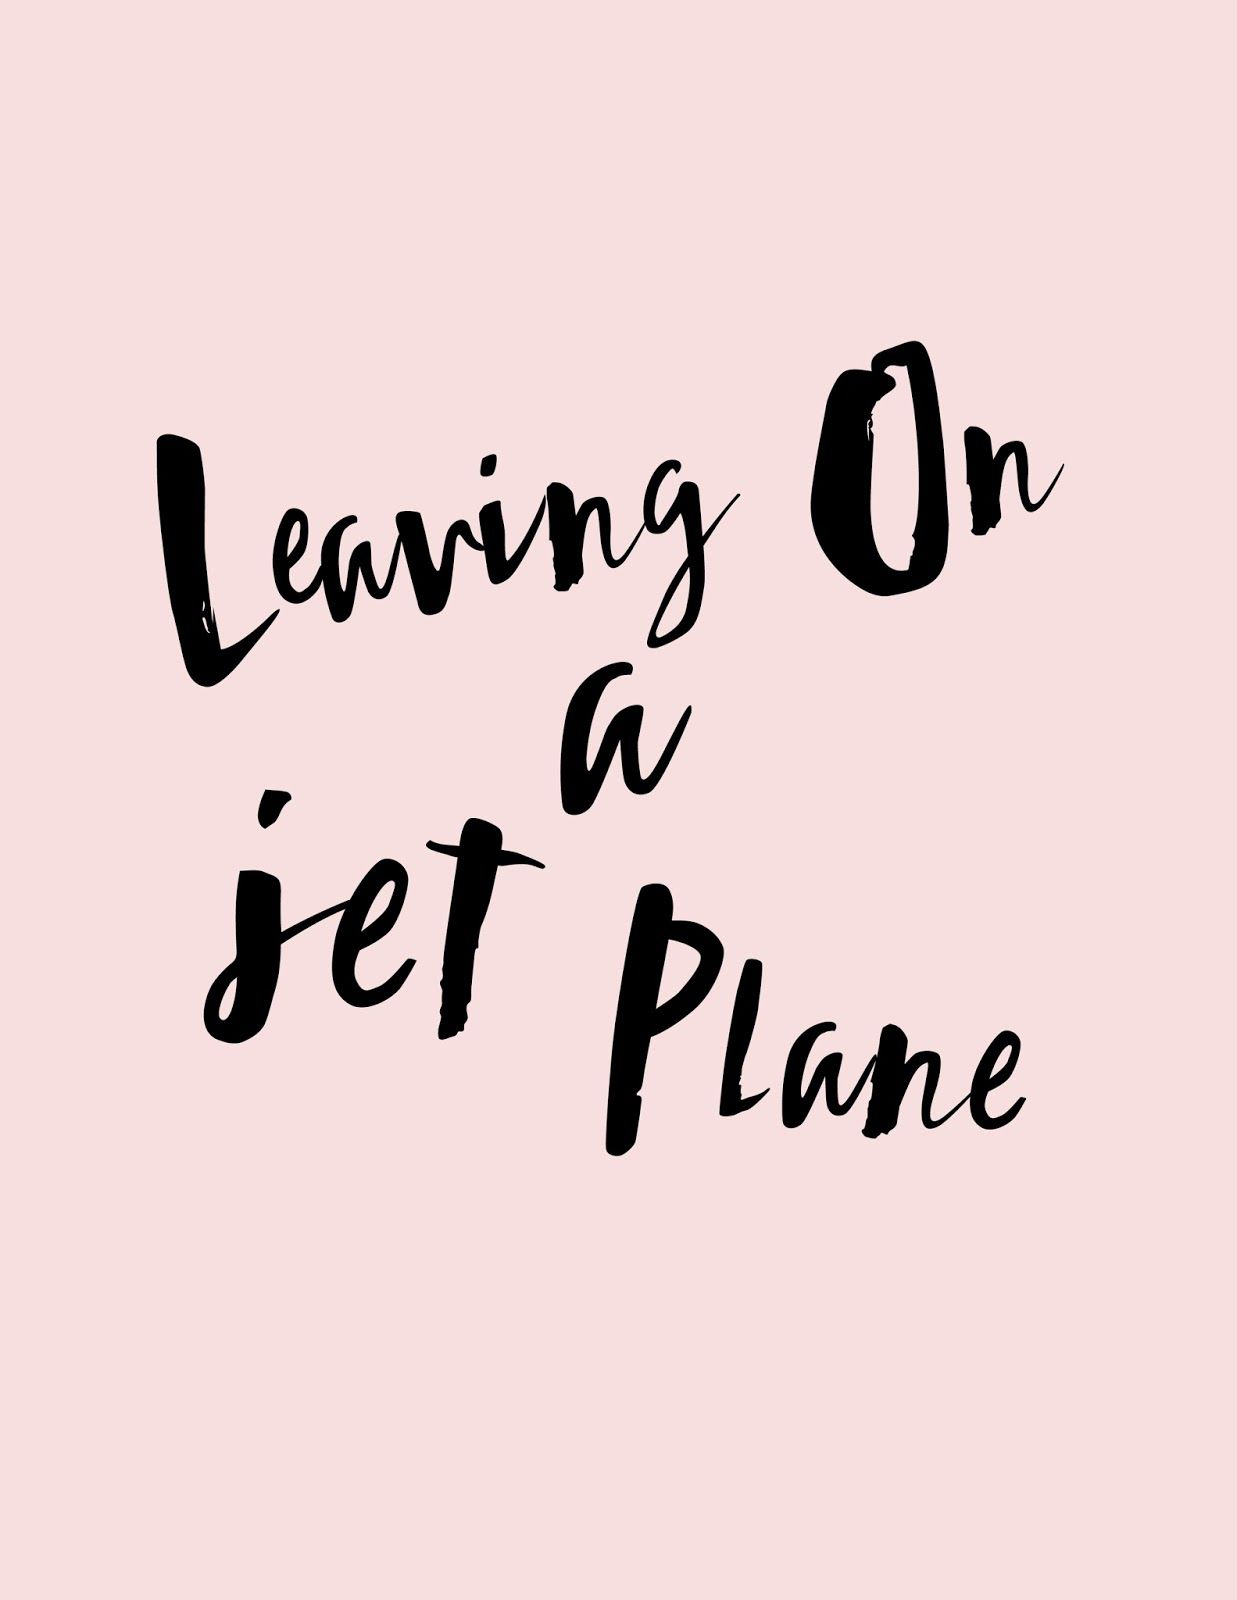 Leaving On A Jet Plane   Plane quotes, Love quotes, Song ...